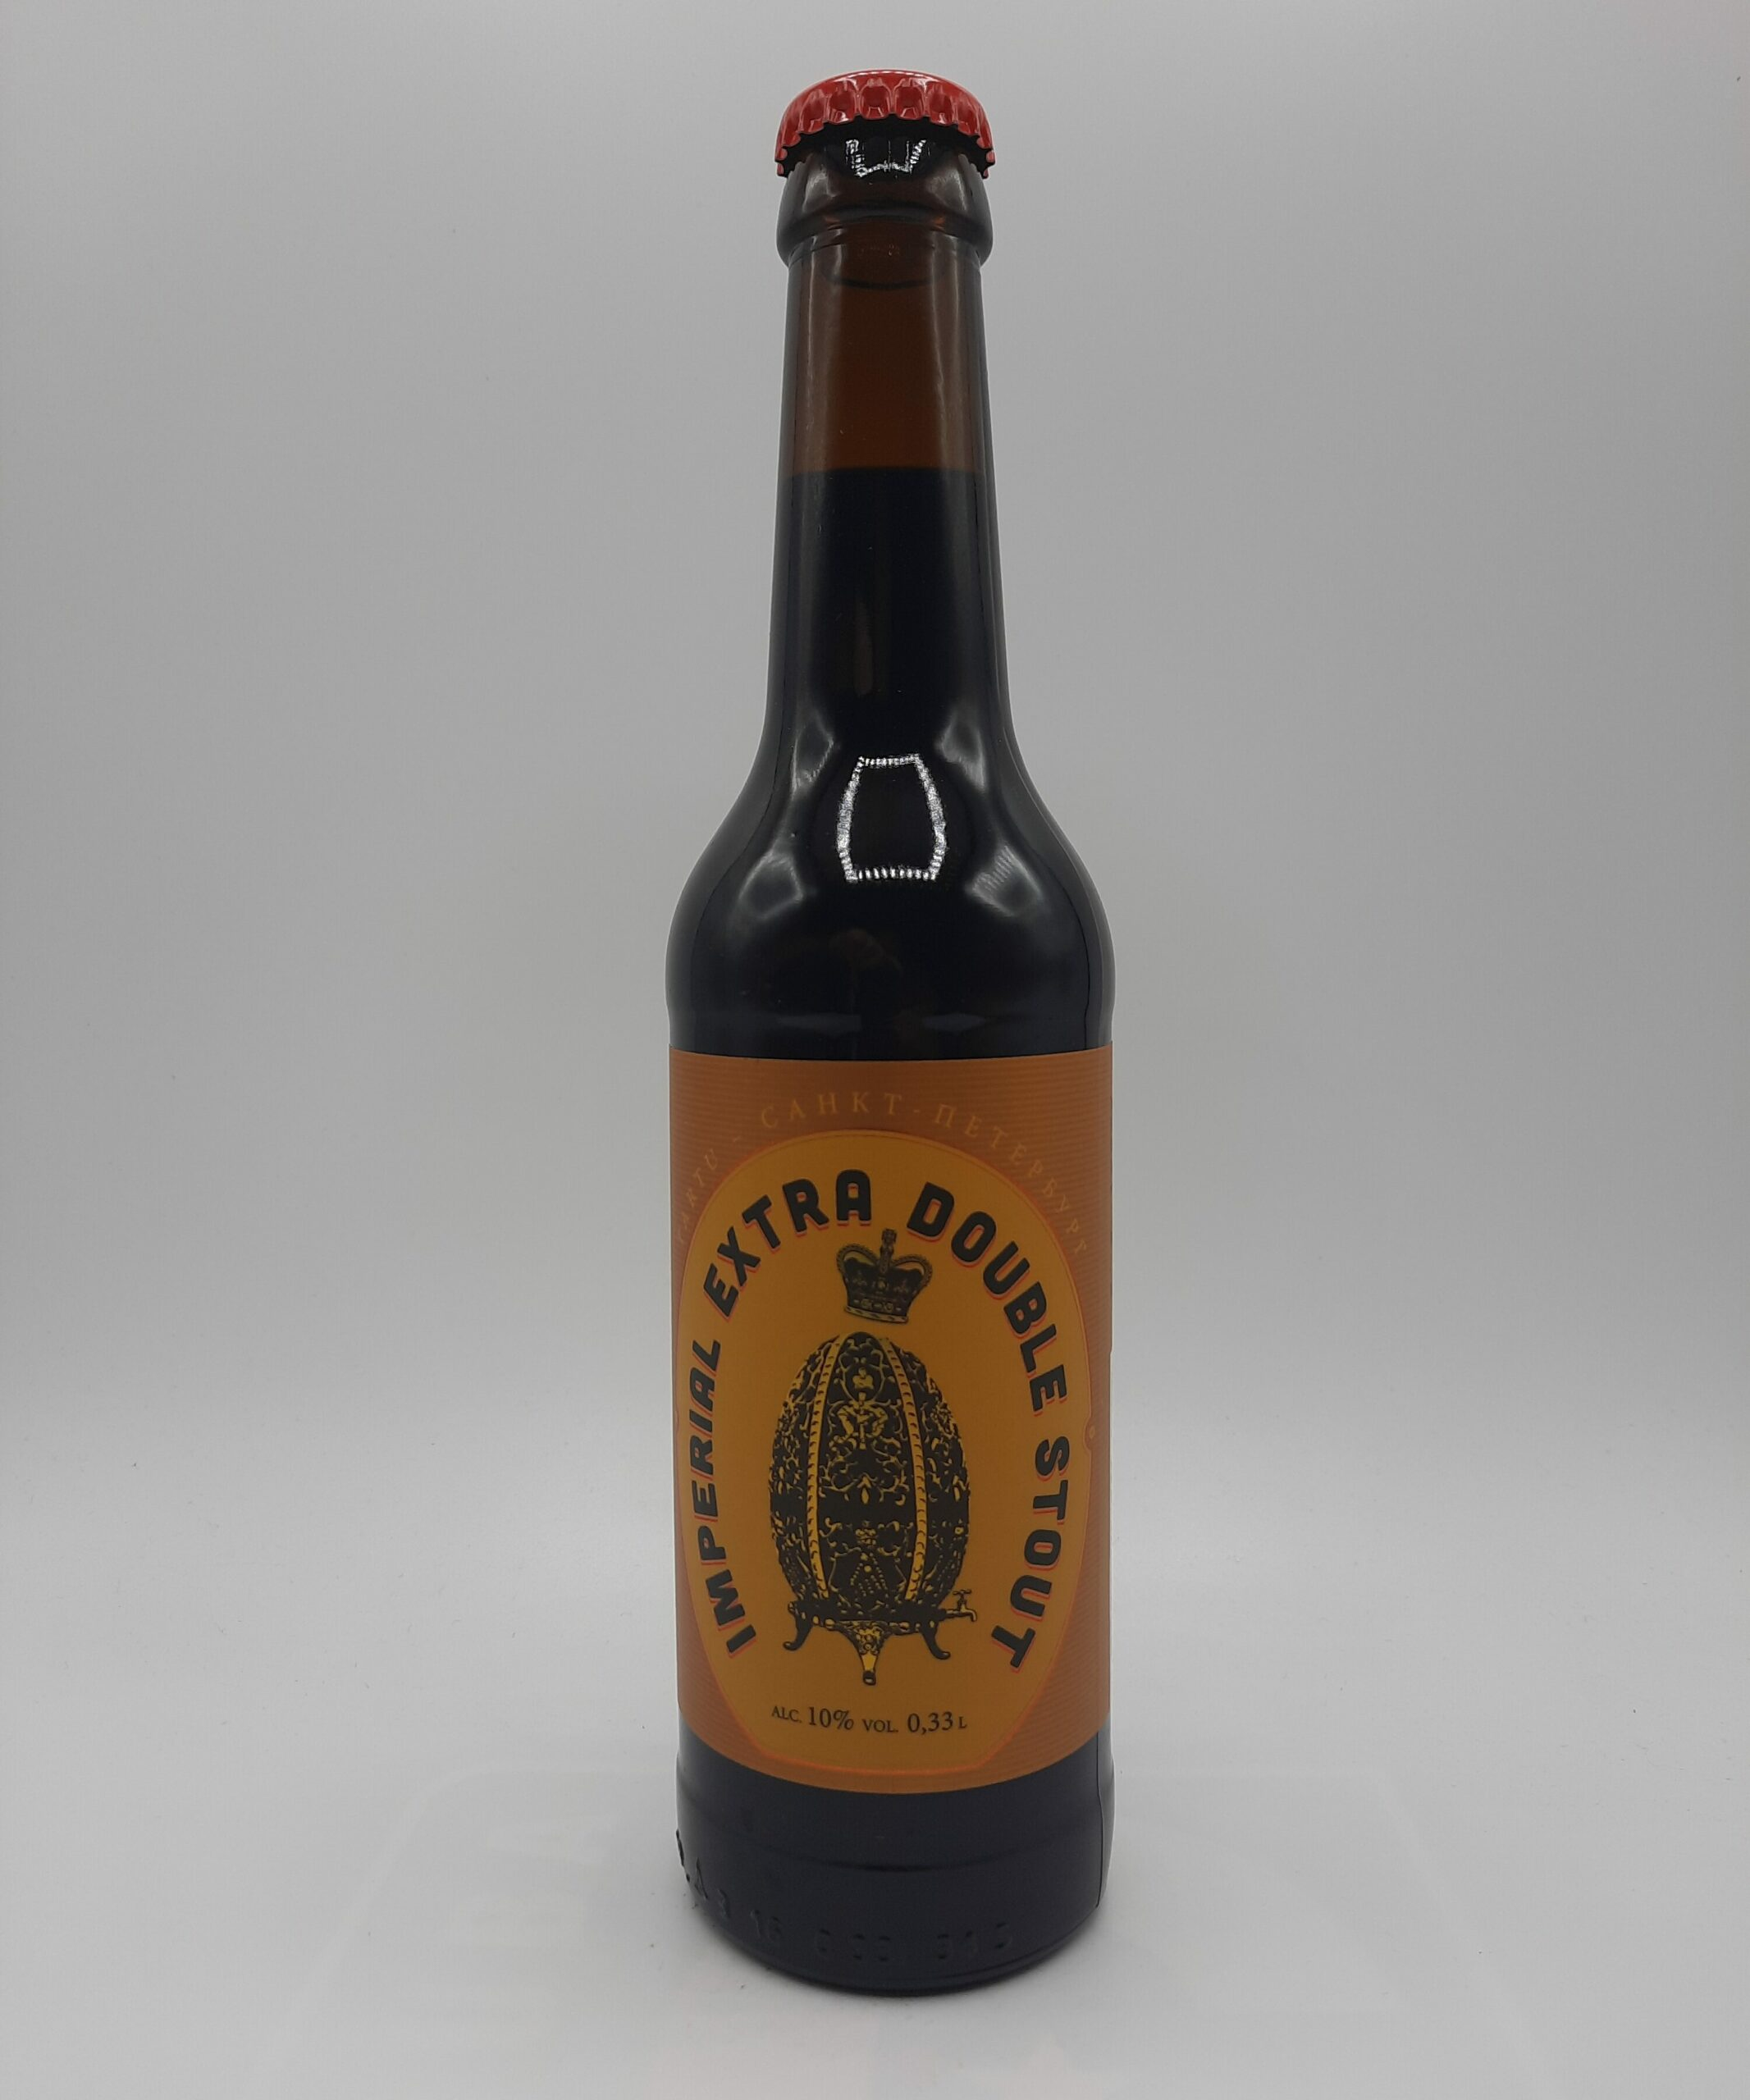 Image Imperial extra double stout